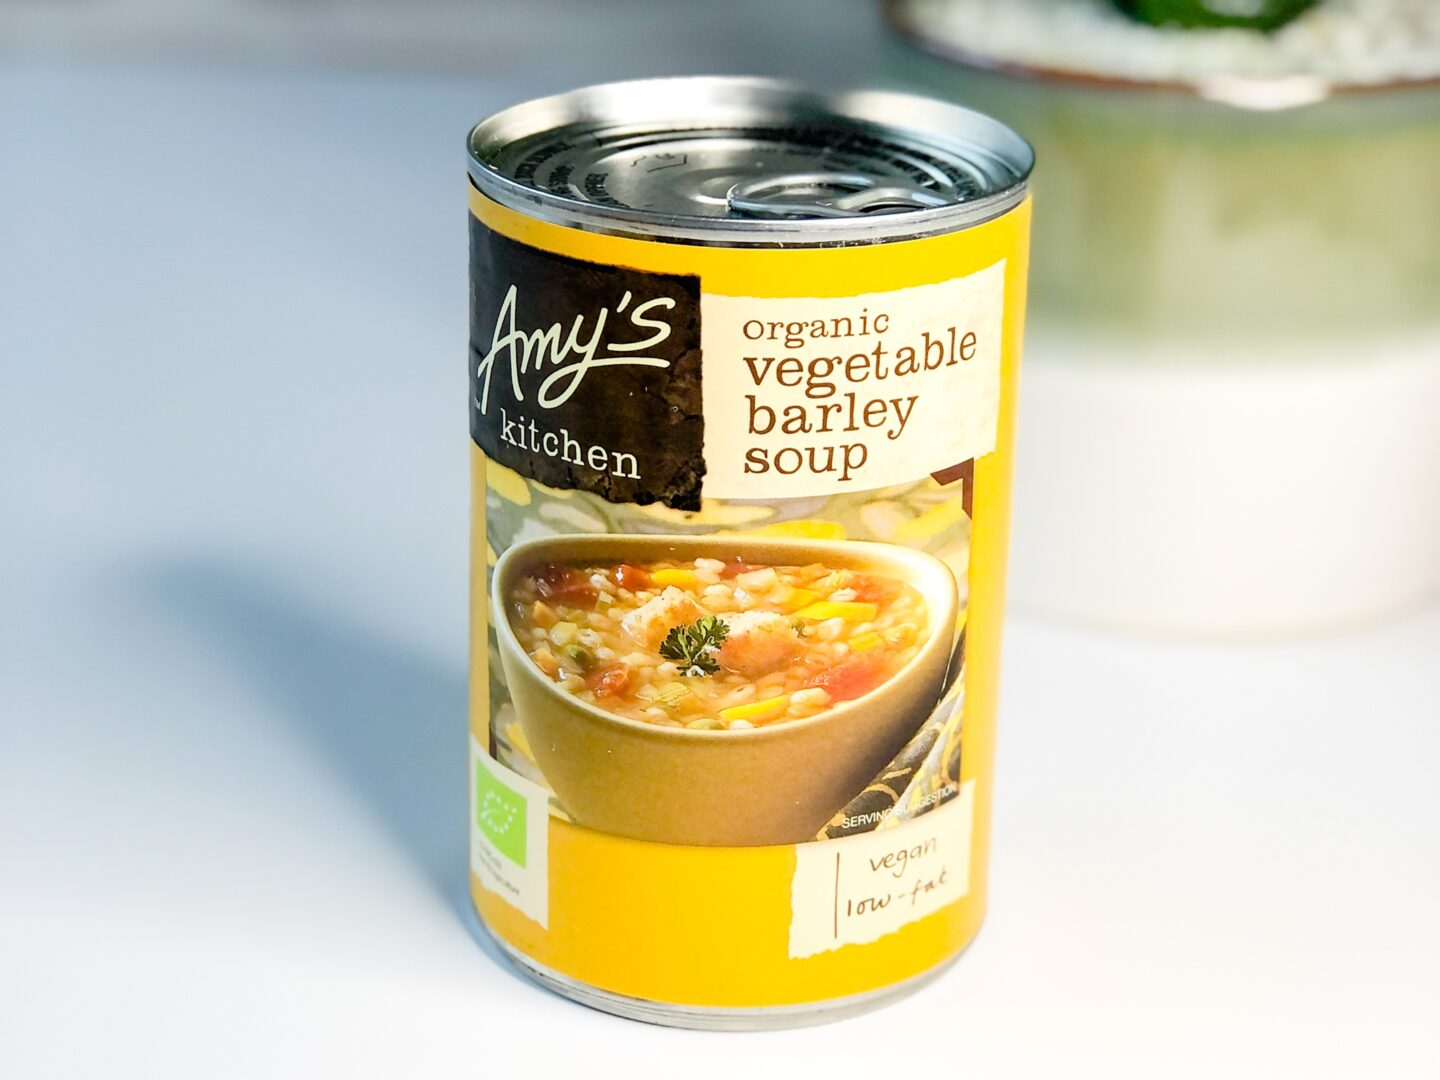 Amy's Kitchen Organic Vegetable Barley Soup - Degusta Box Contents September 2020